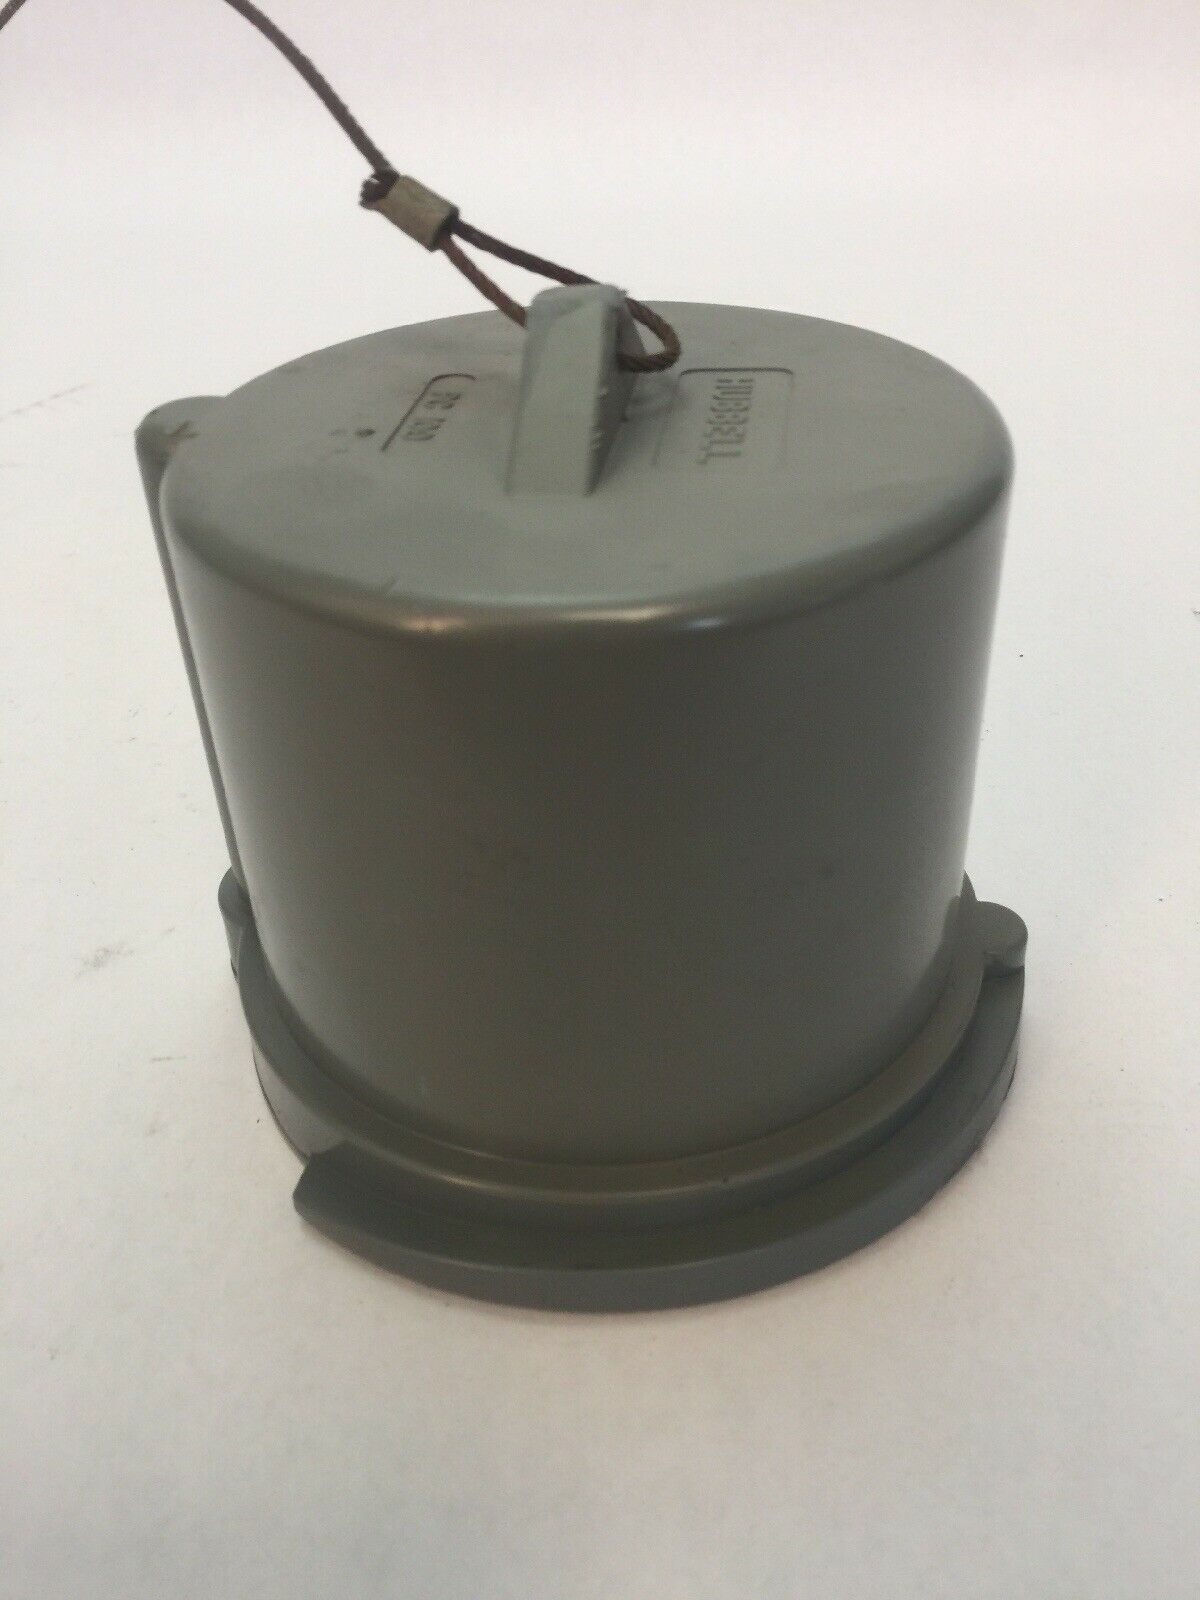 Closure HUBBELL WIRING DEVICE-KELLEMS PC100 Cap